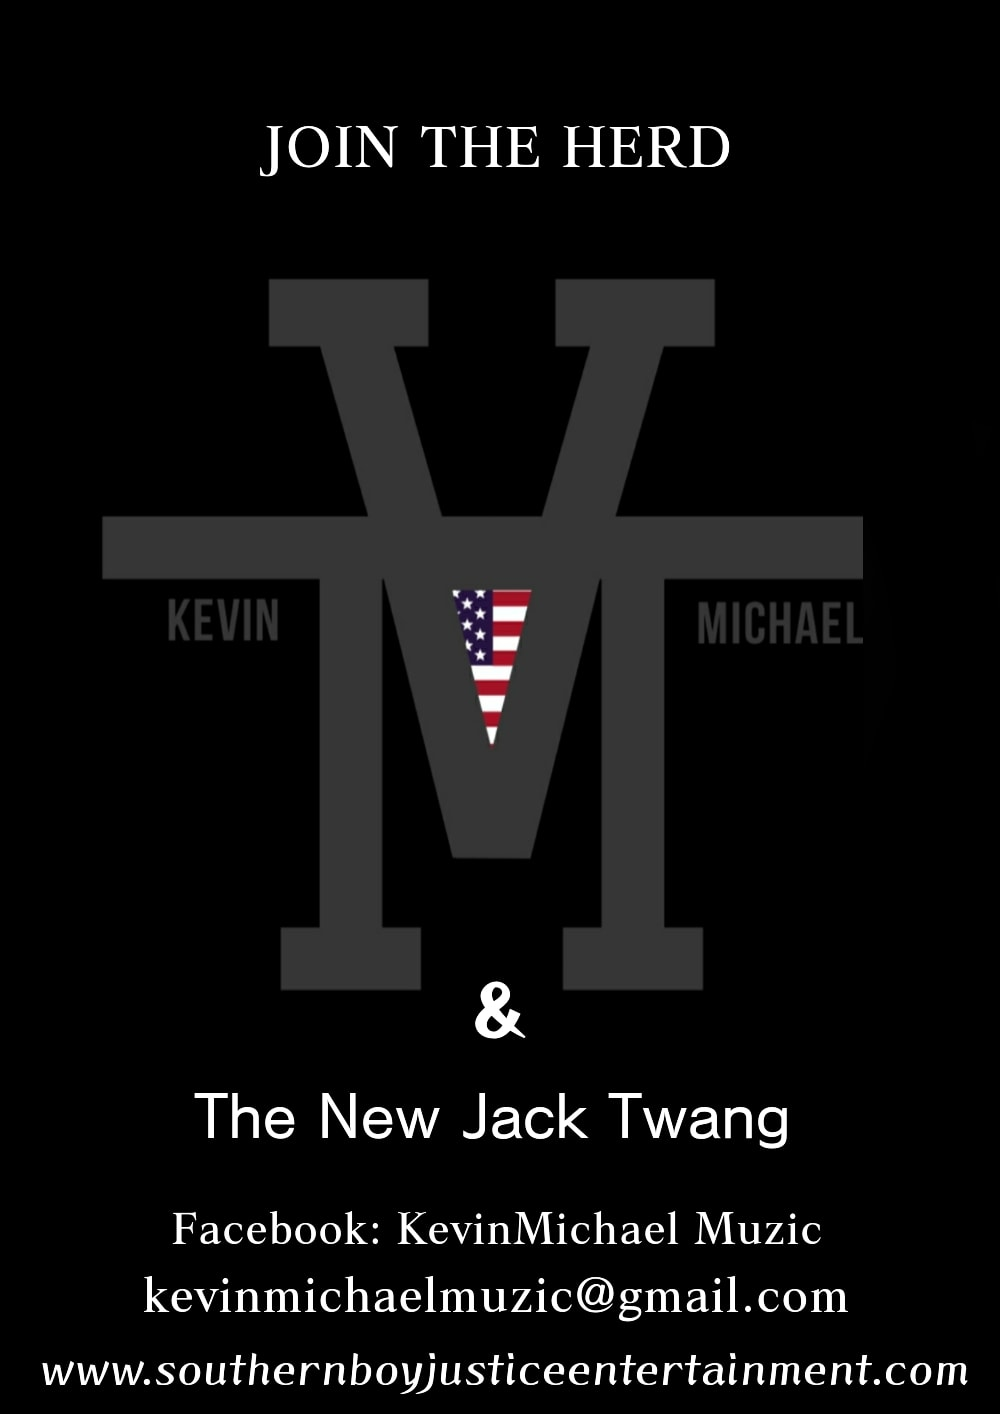 Kevin Michael and the New Jack Twang